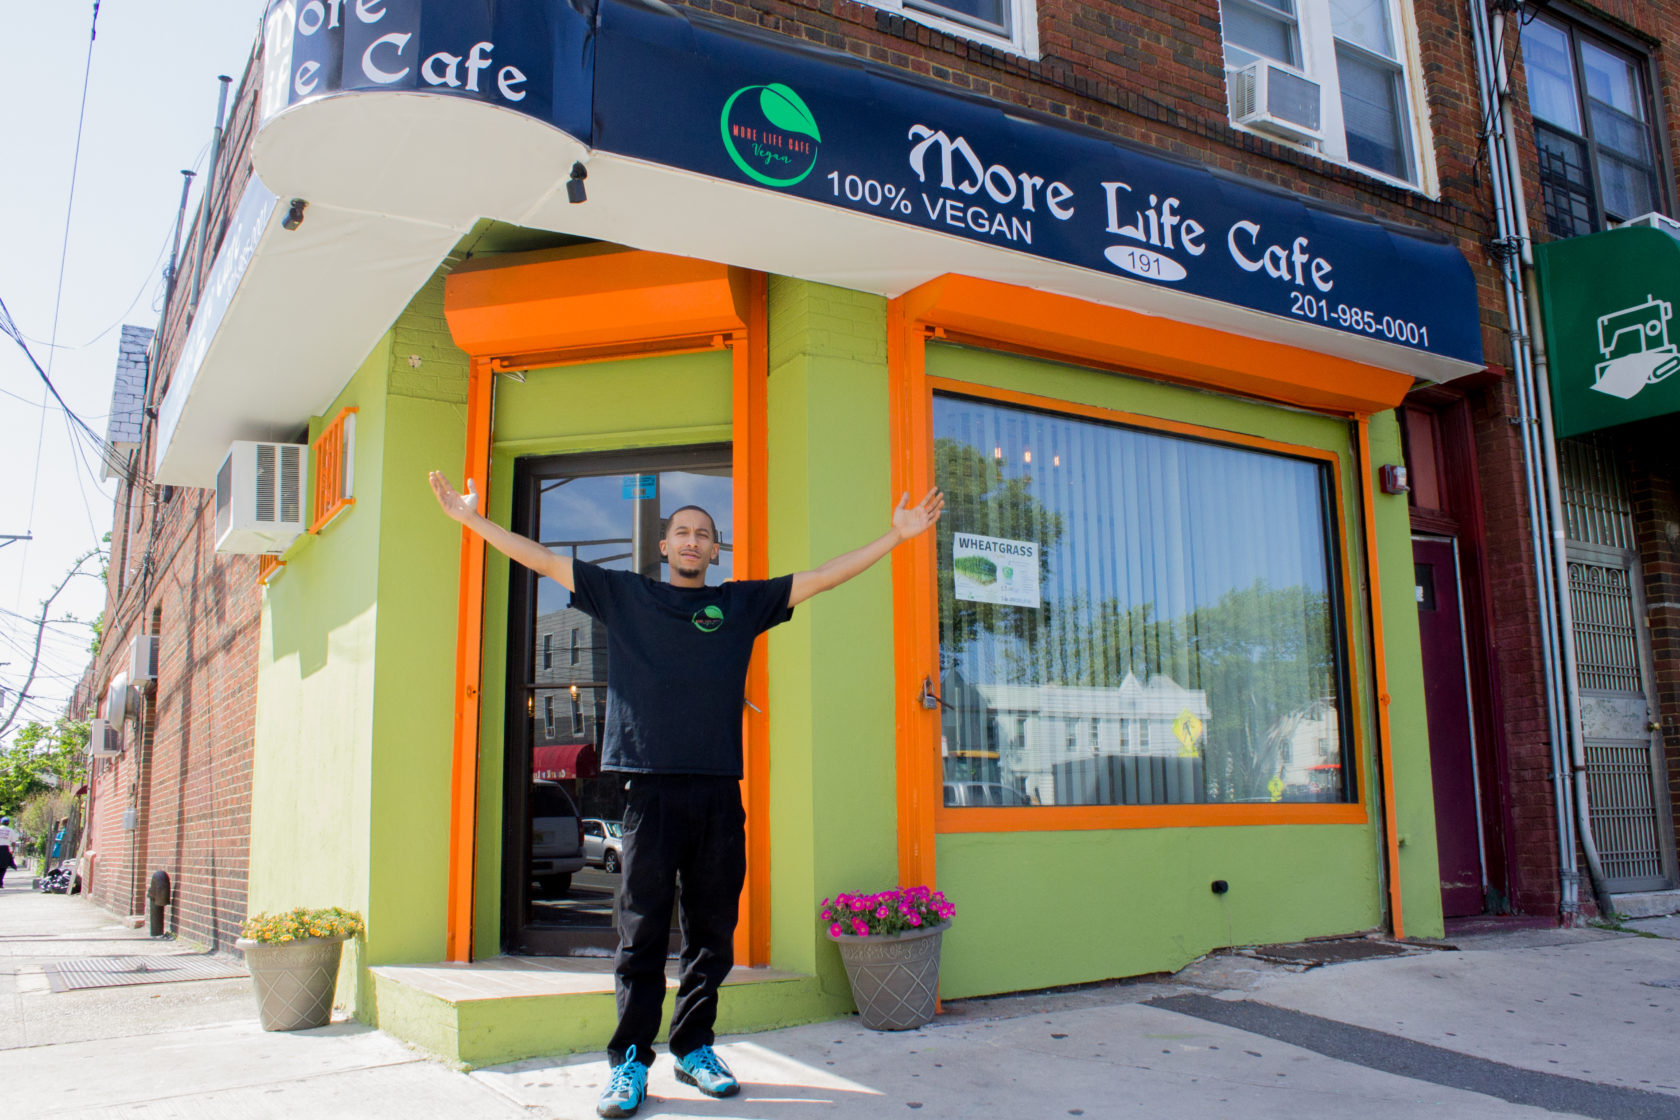 More Life Cafe on Mallory Ave